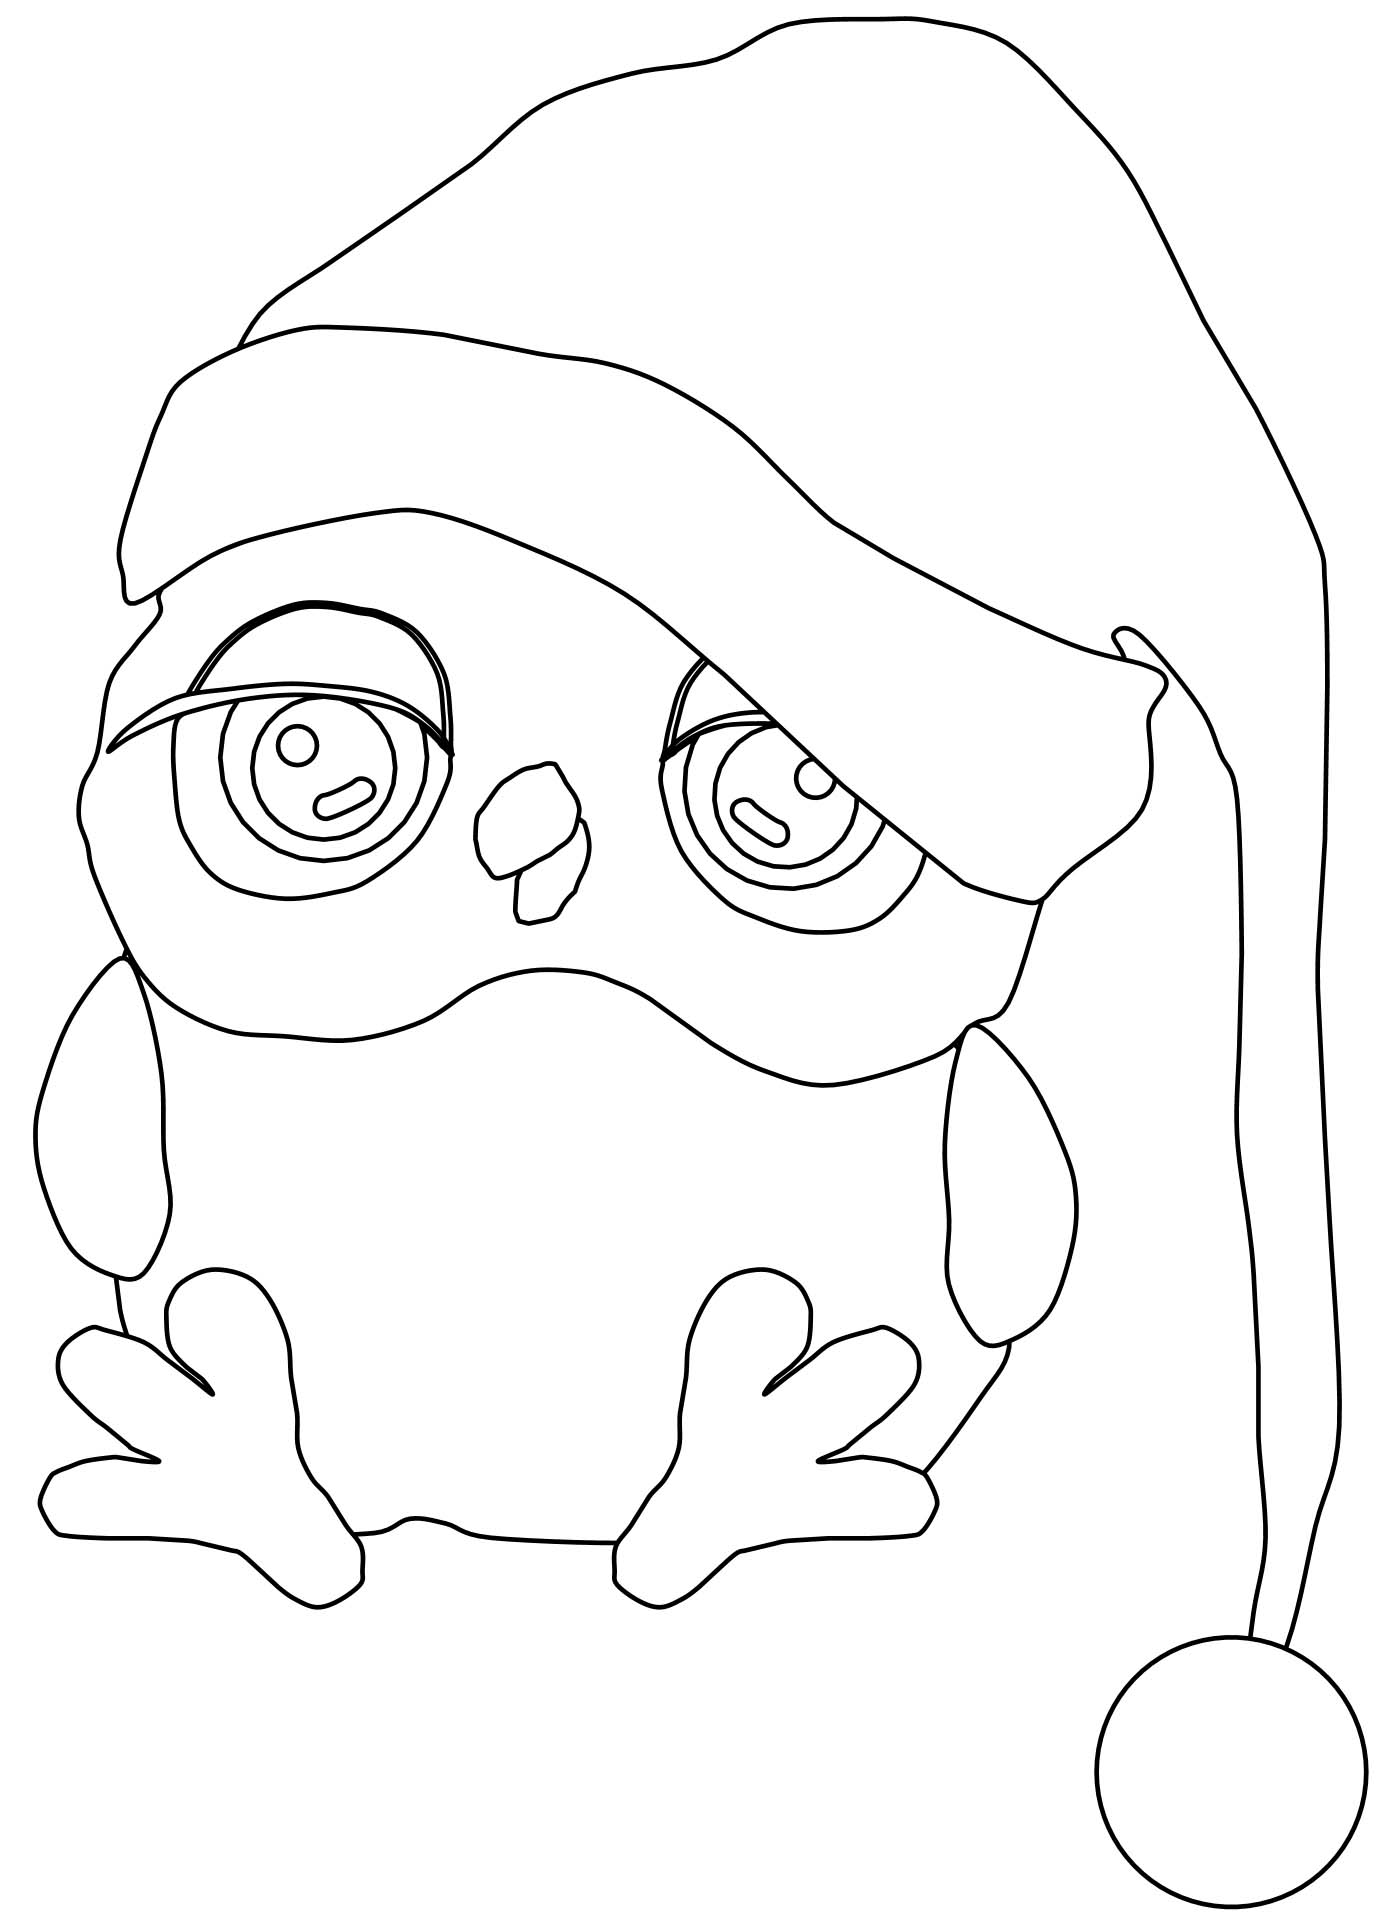 Woody Coloring Pages Coloringsuitecom characters on sesame street ...